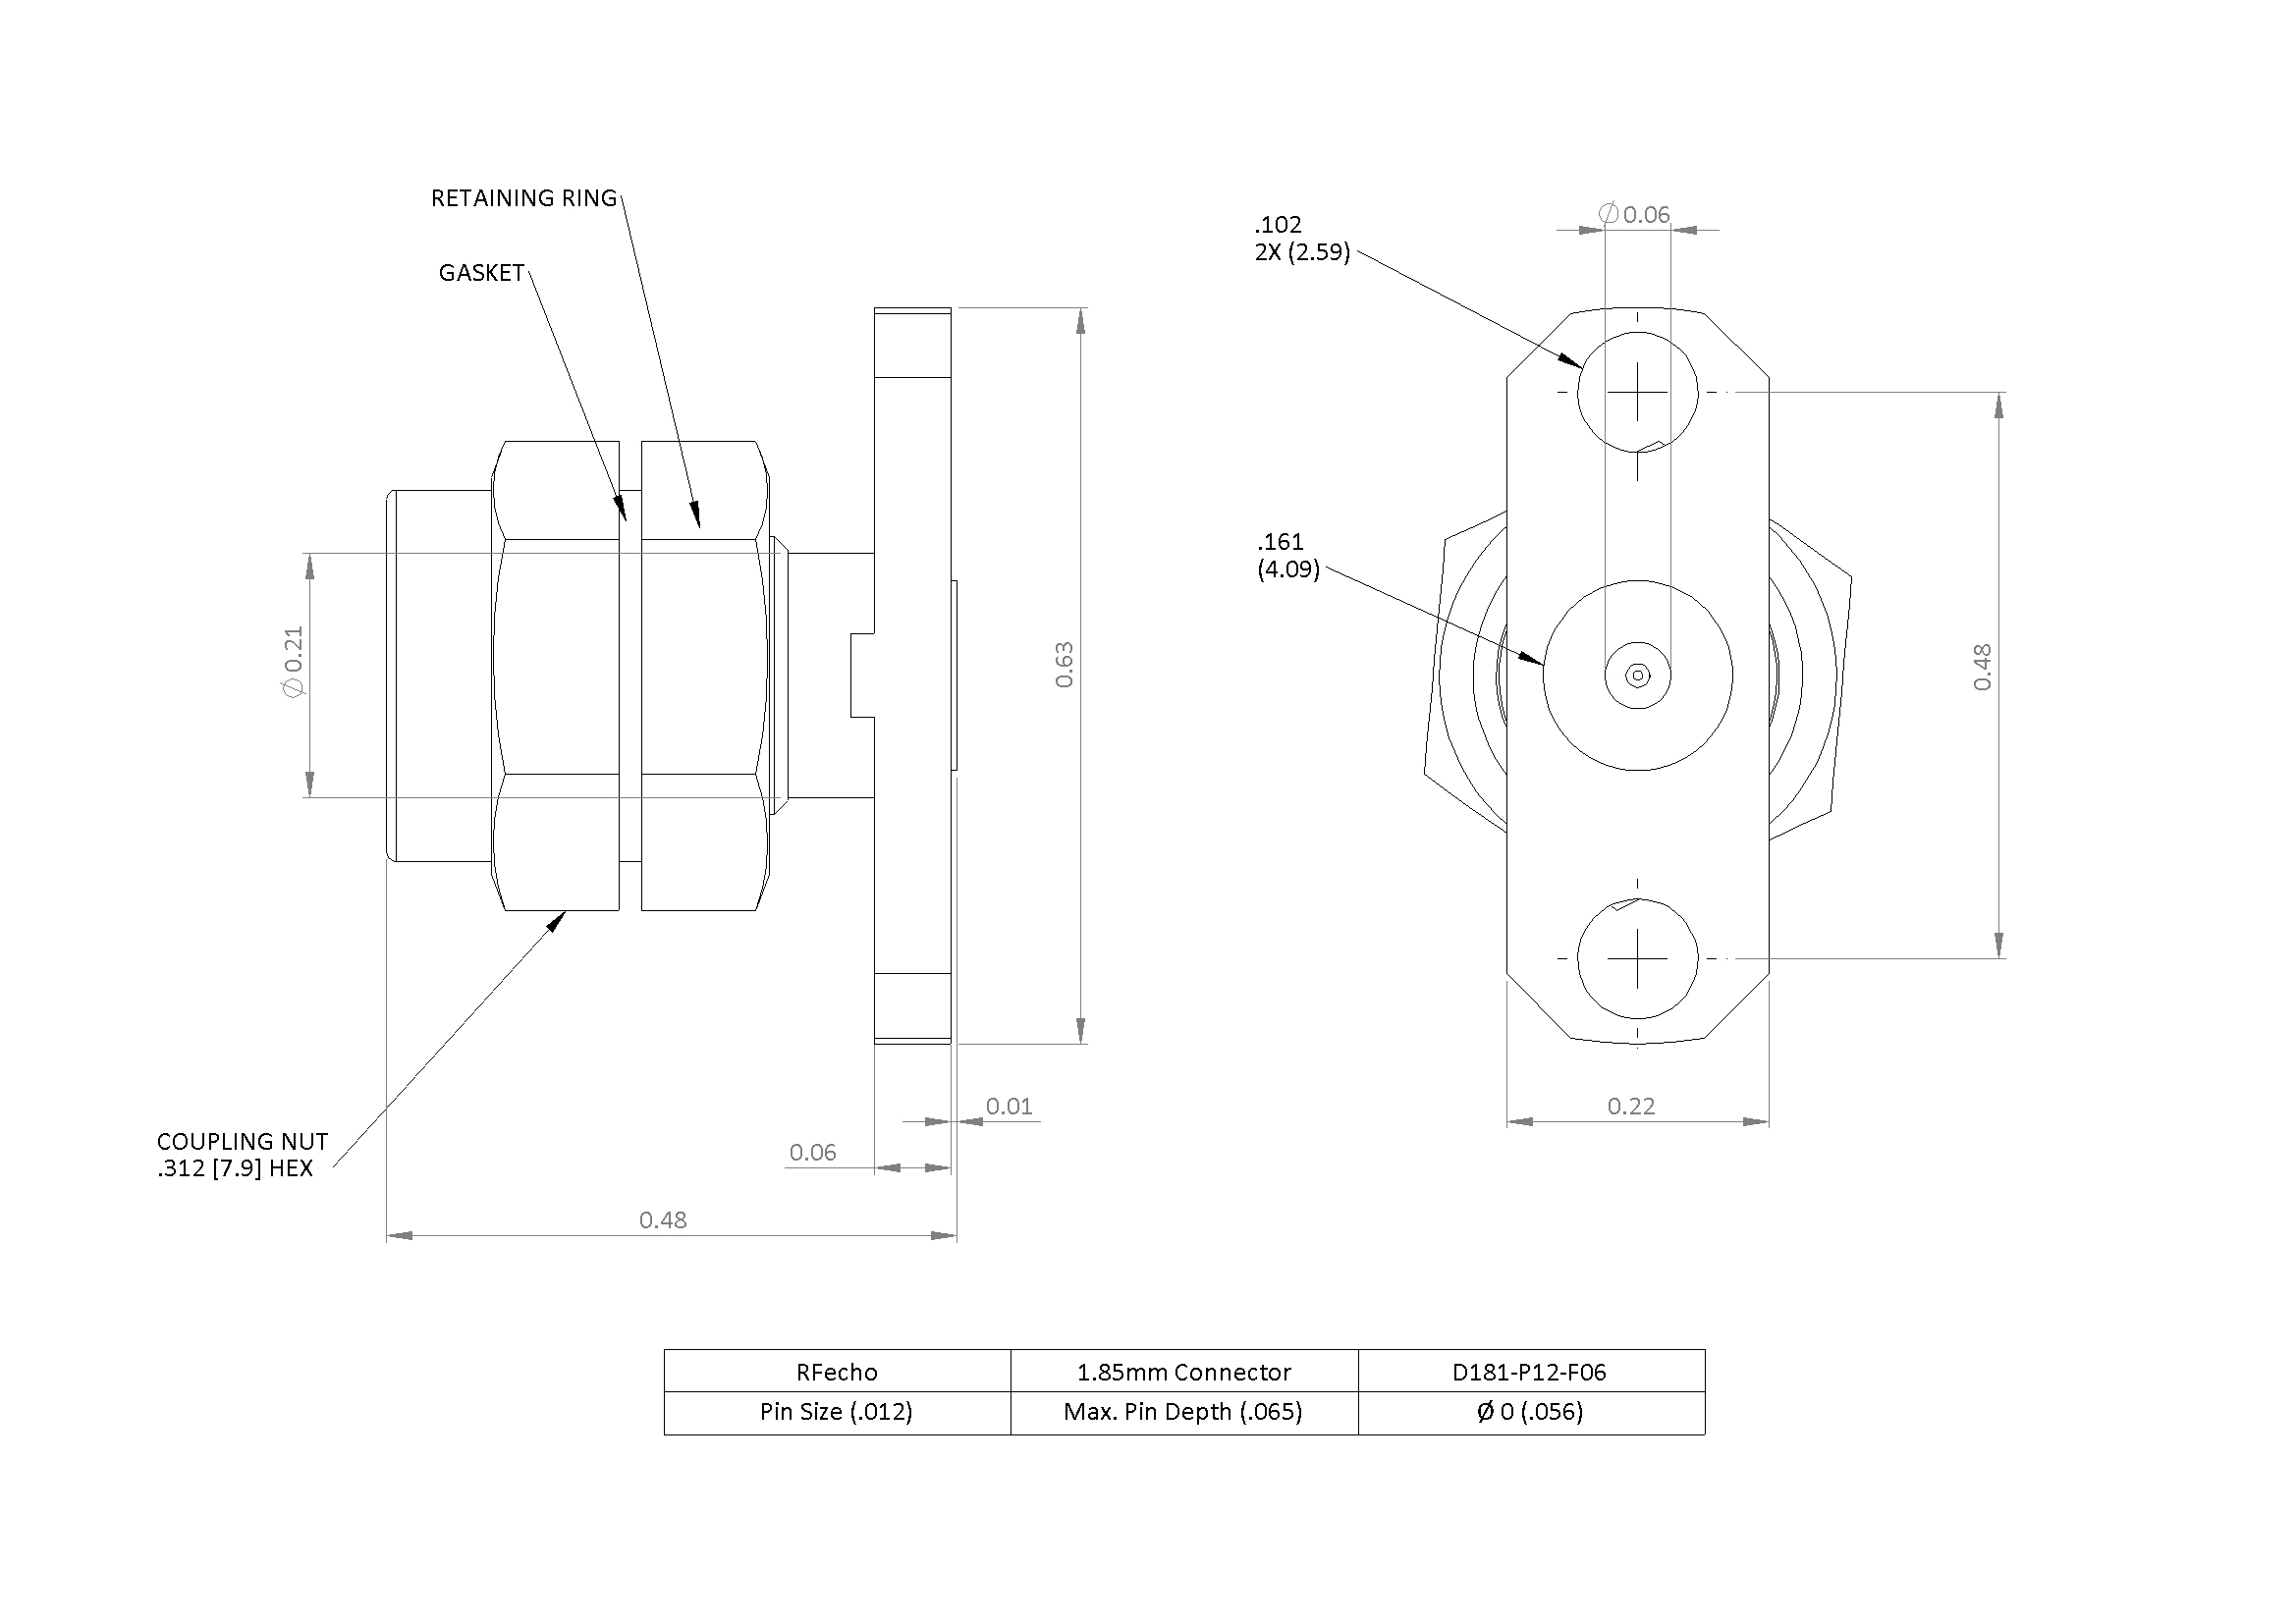 """1.85mm 67 GHz, 0.012"""" Accept Pin Diameter, 2 Hole 0.625″ Long Mounting Flange Male Connector"""